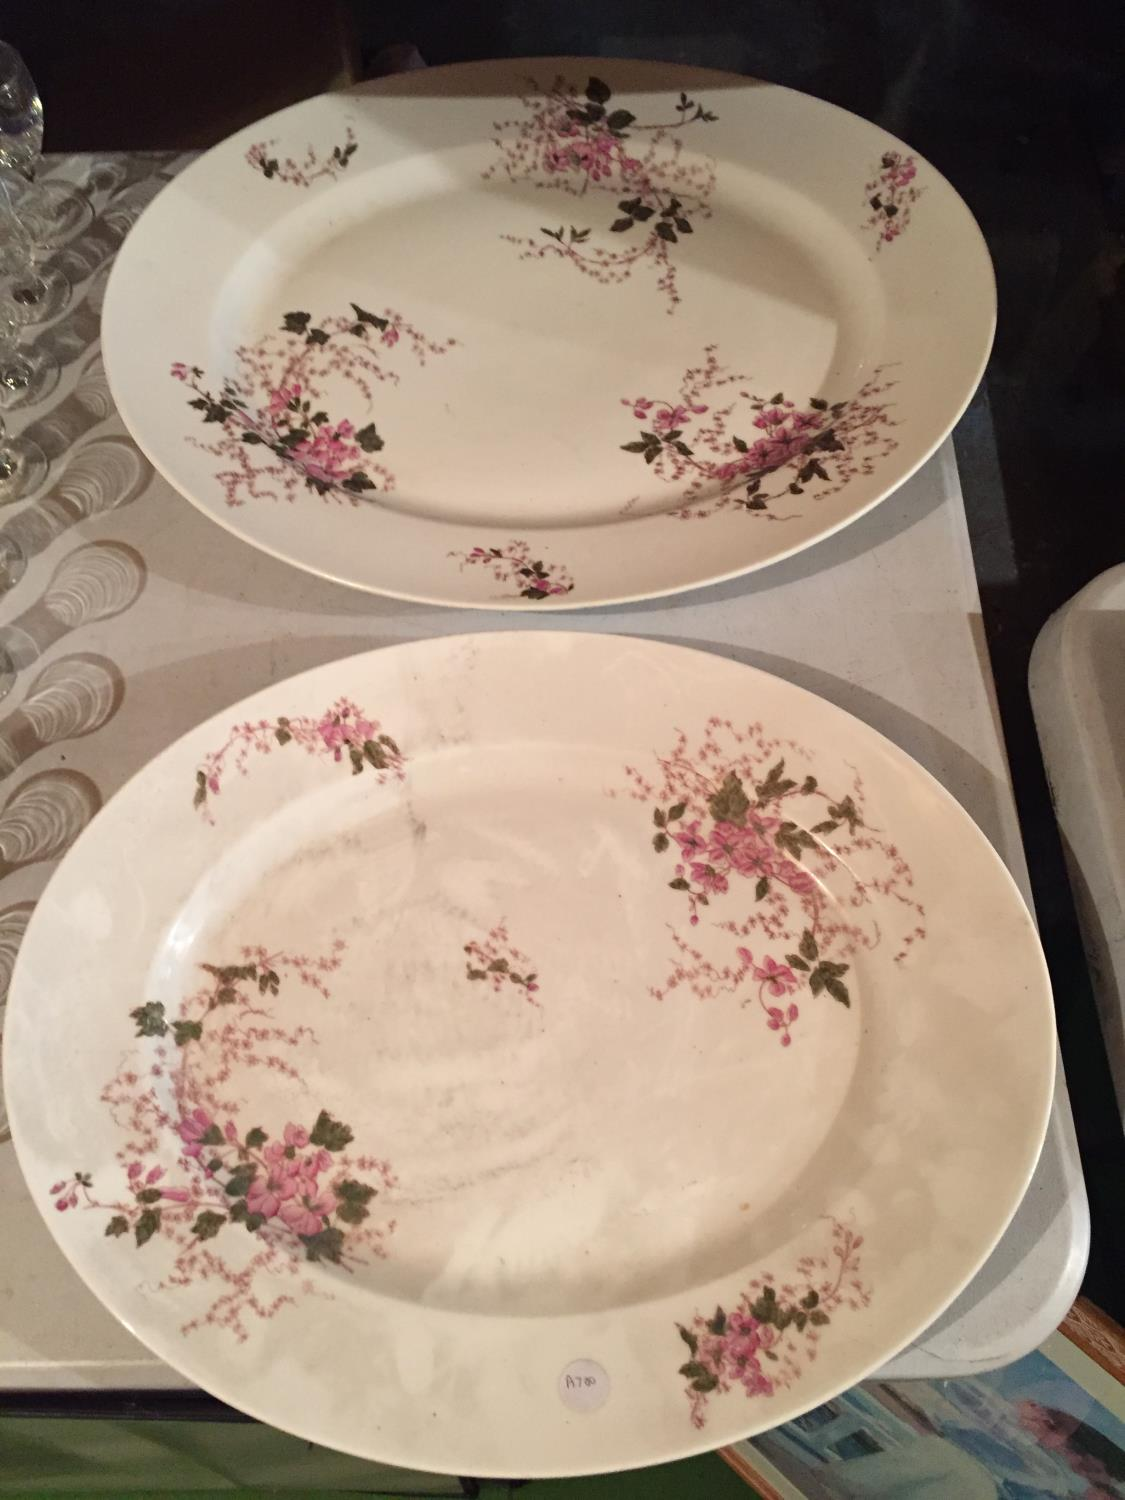 TWO LARGE HEAVY CERAMIC MEAT PLATTERS WITH A DELICATE PINK FLOWER DESIGN - Image 2 of 6